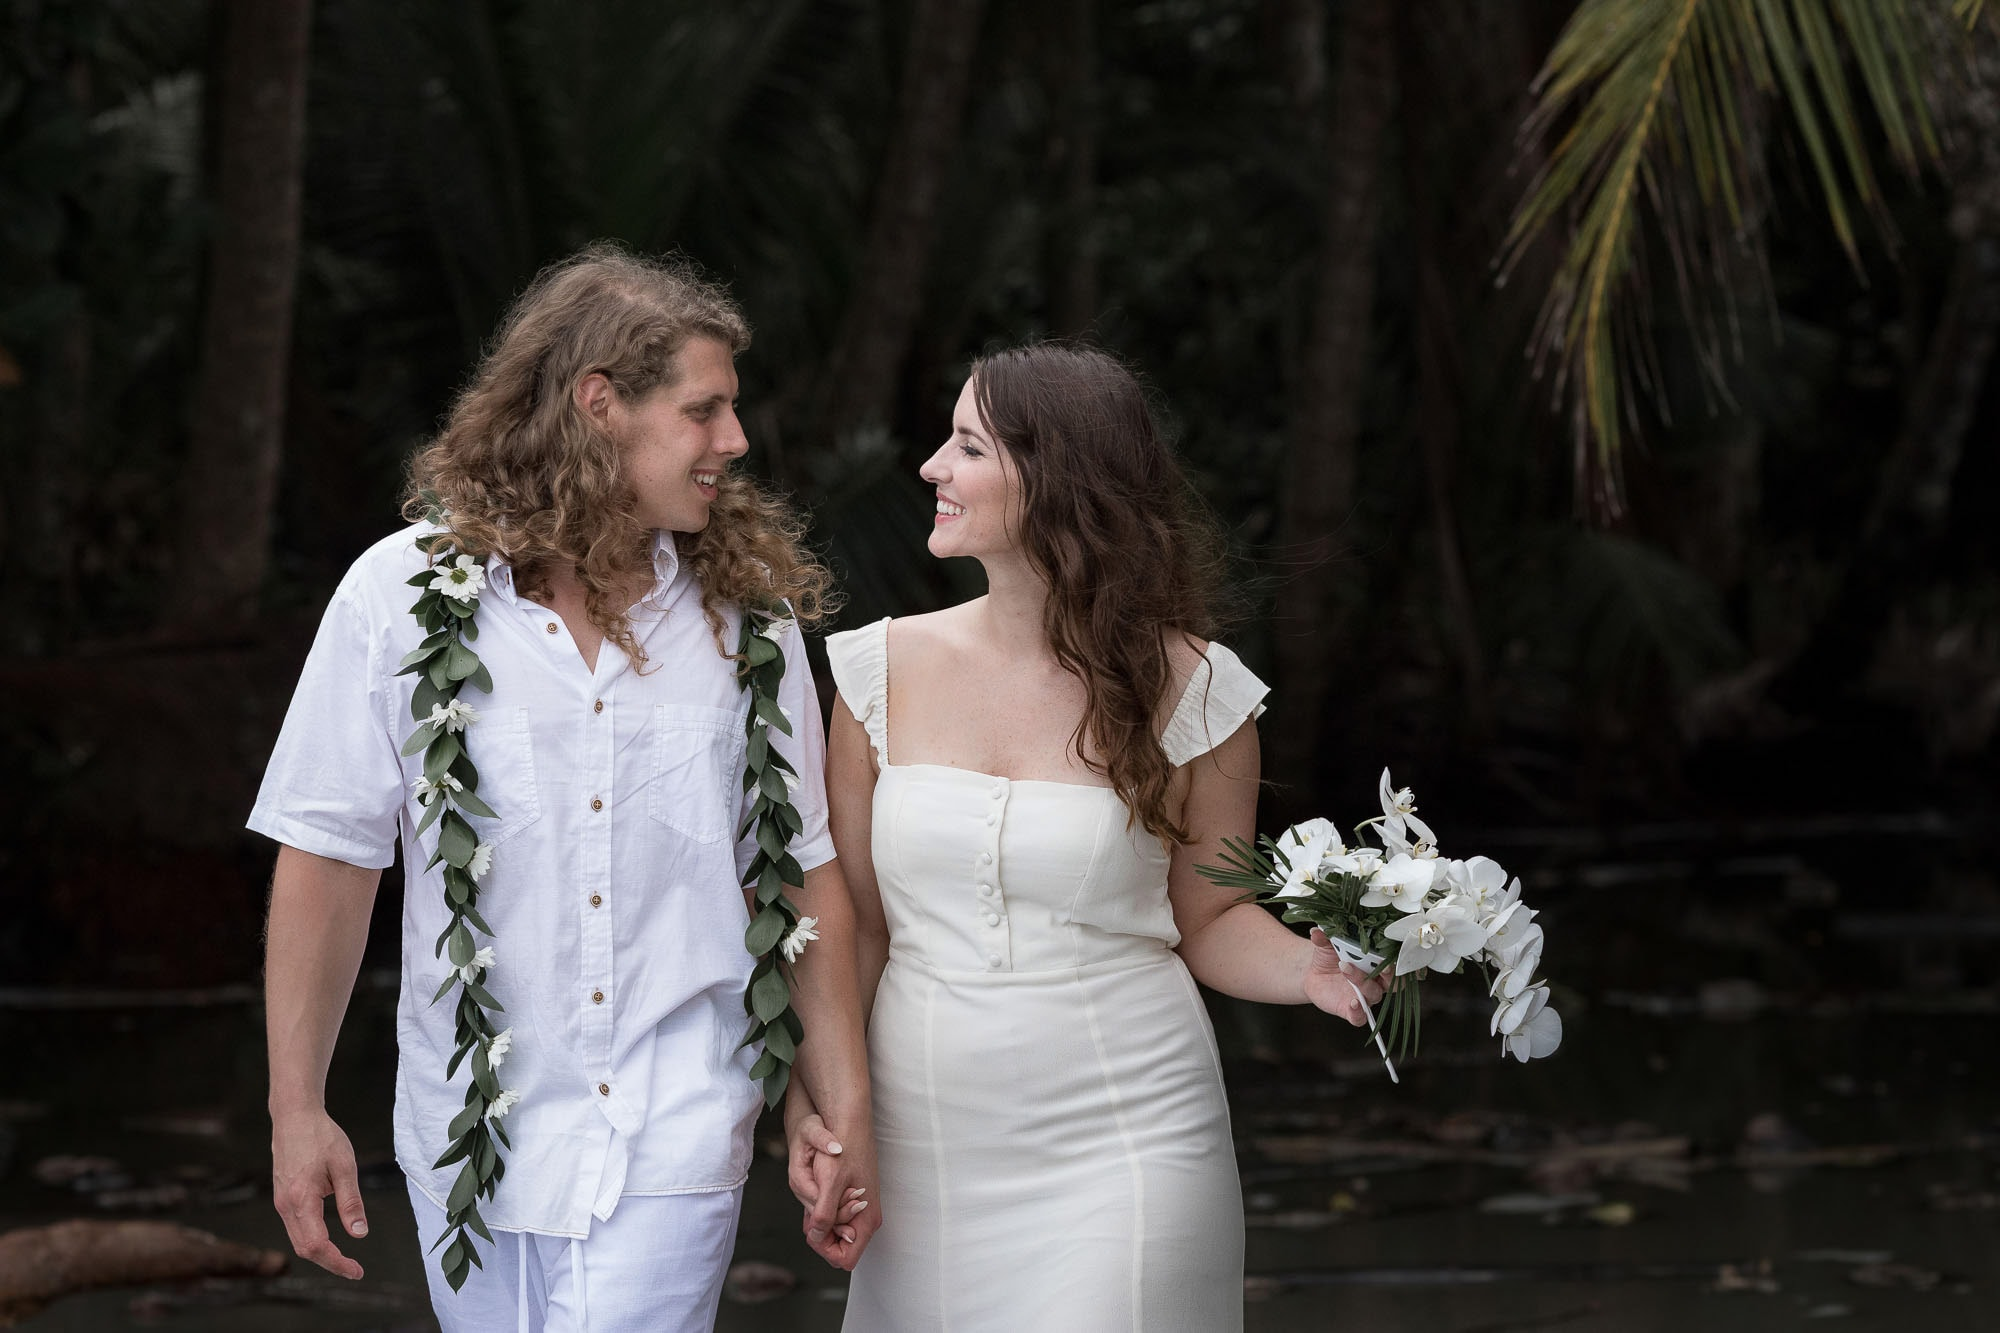 The happy couple strolling after their beach elopement in one of the best places to elope.